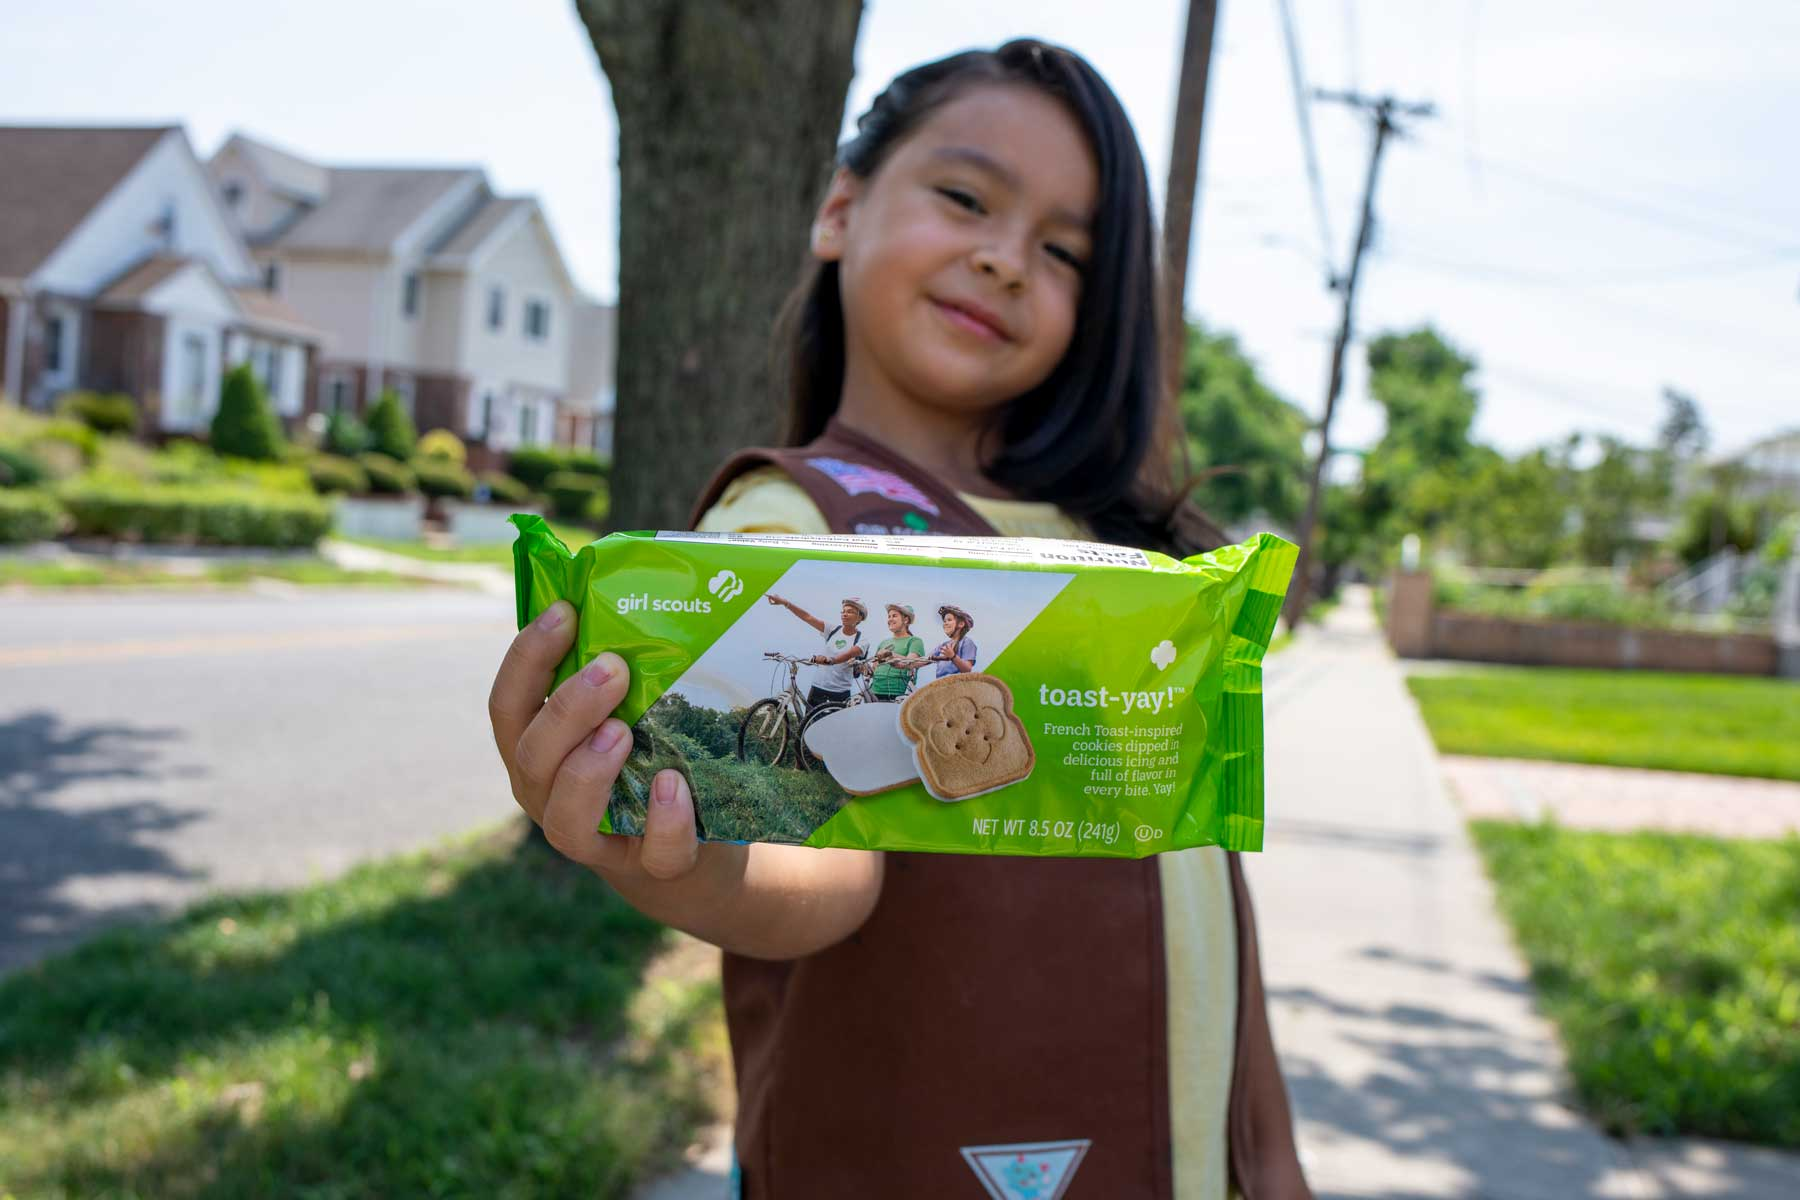 Girl Scout with new box of cookies in hand